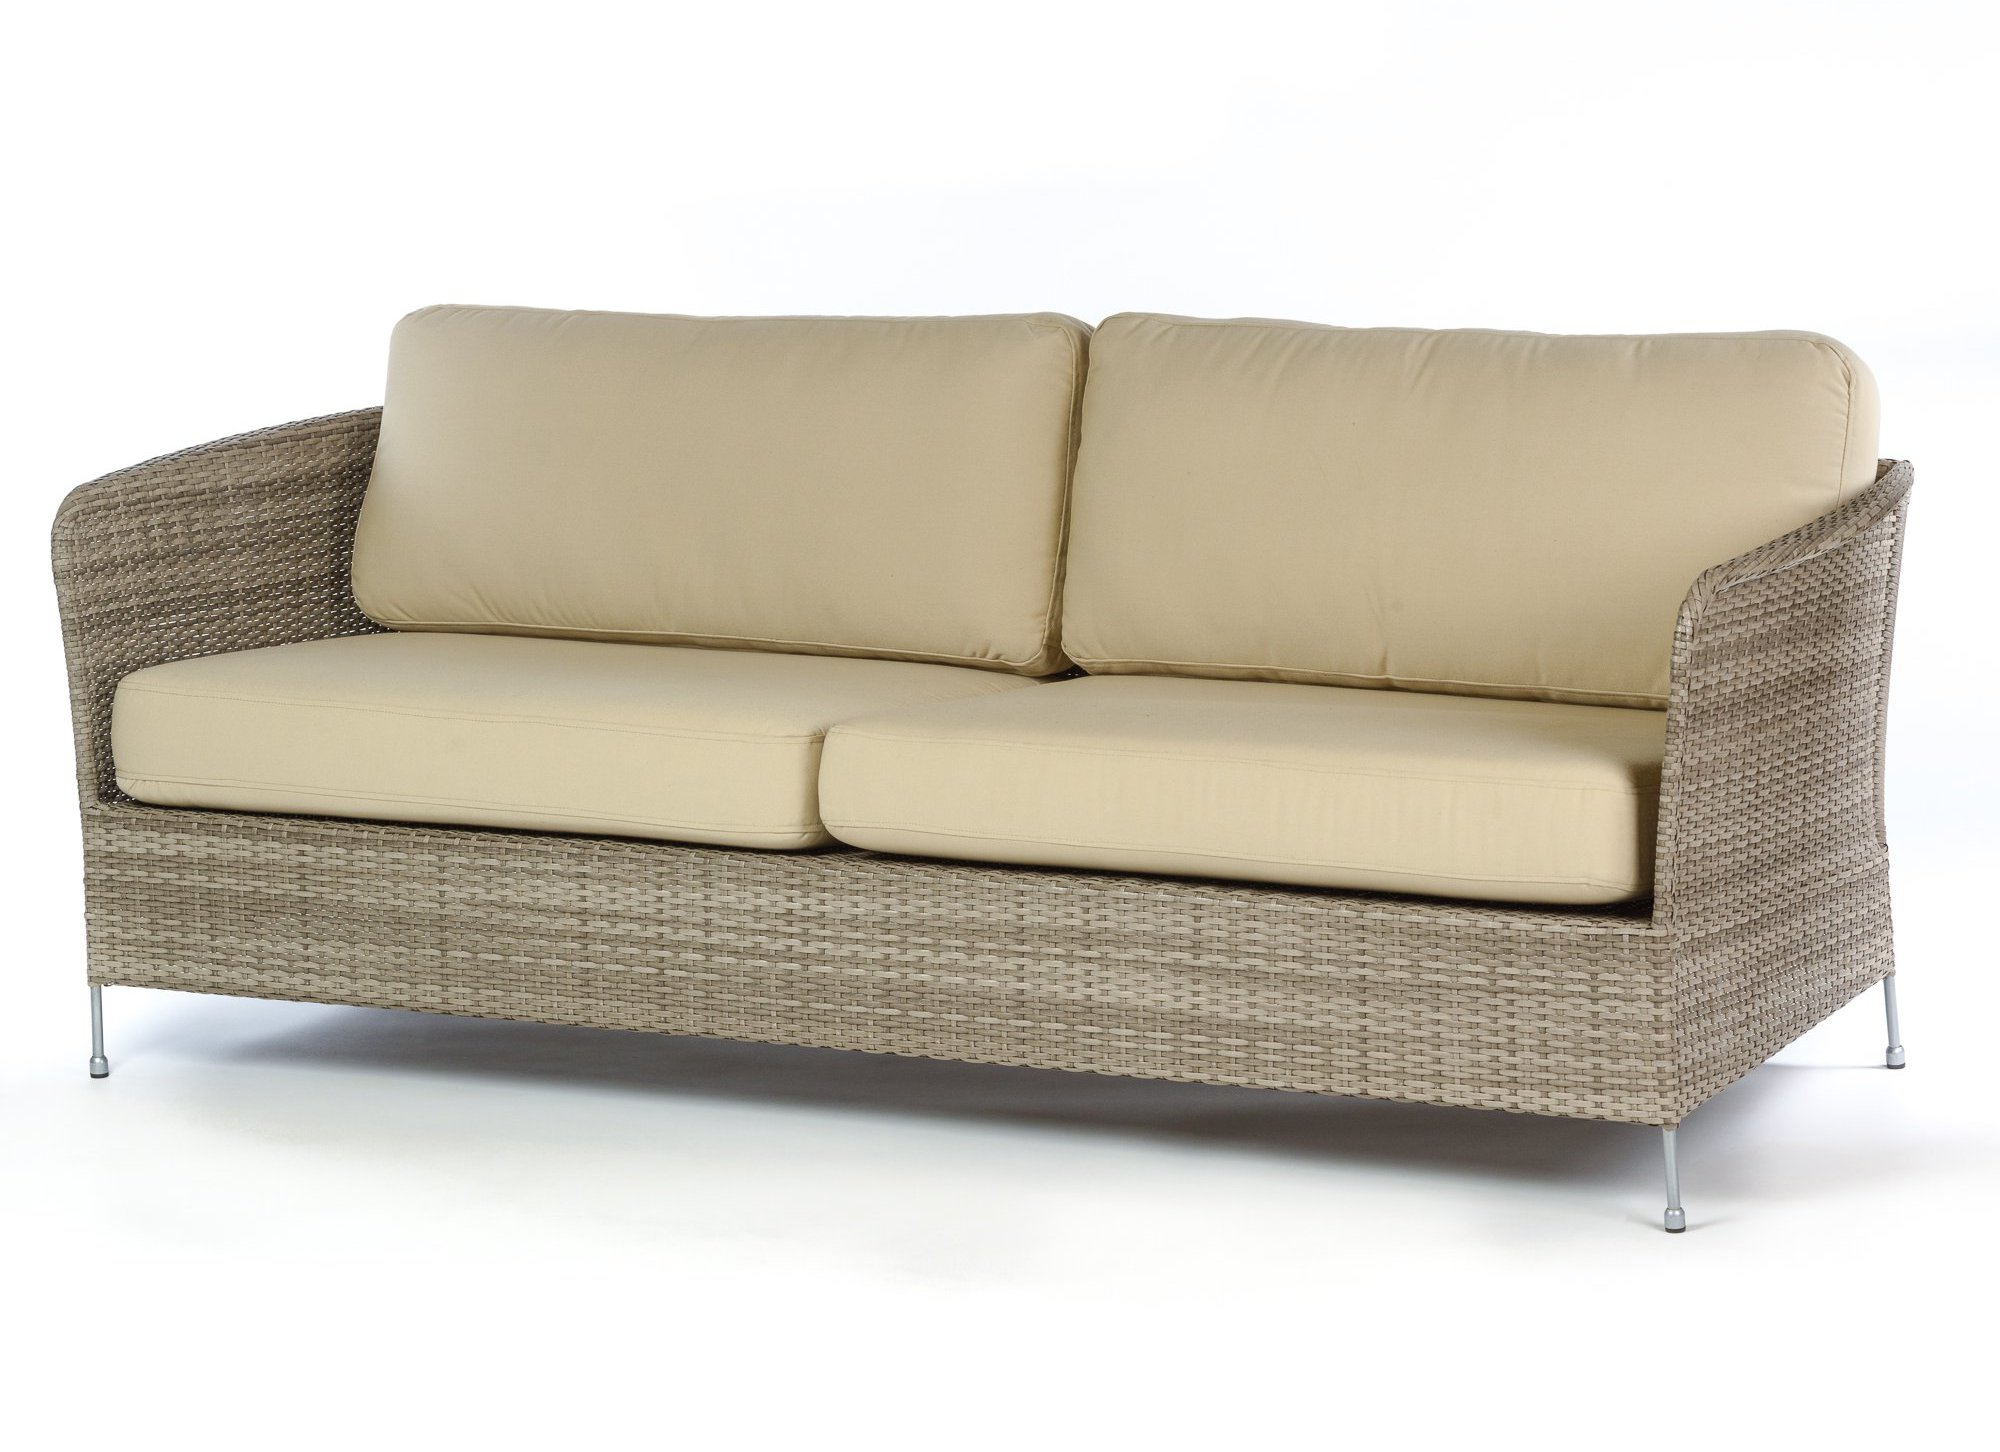 Deep Seating Replacement Cushions For Outdoor Furniture Wicker